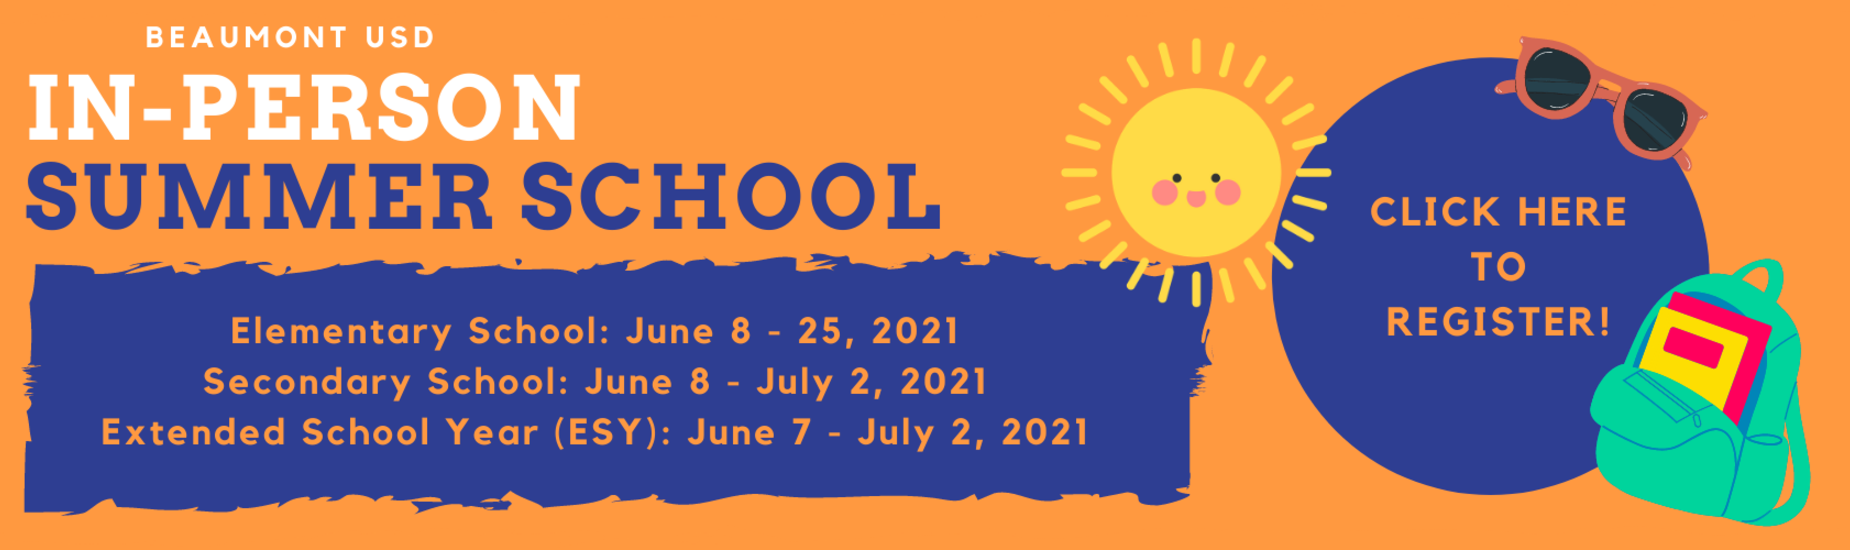 Sun, sunglasses, backpack with information to register for summer school